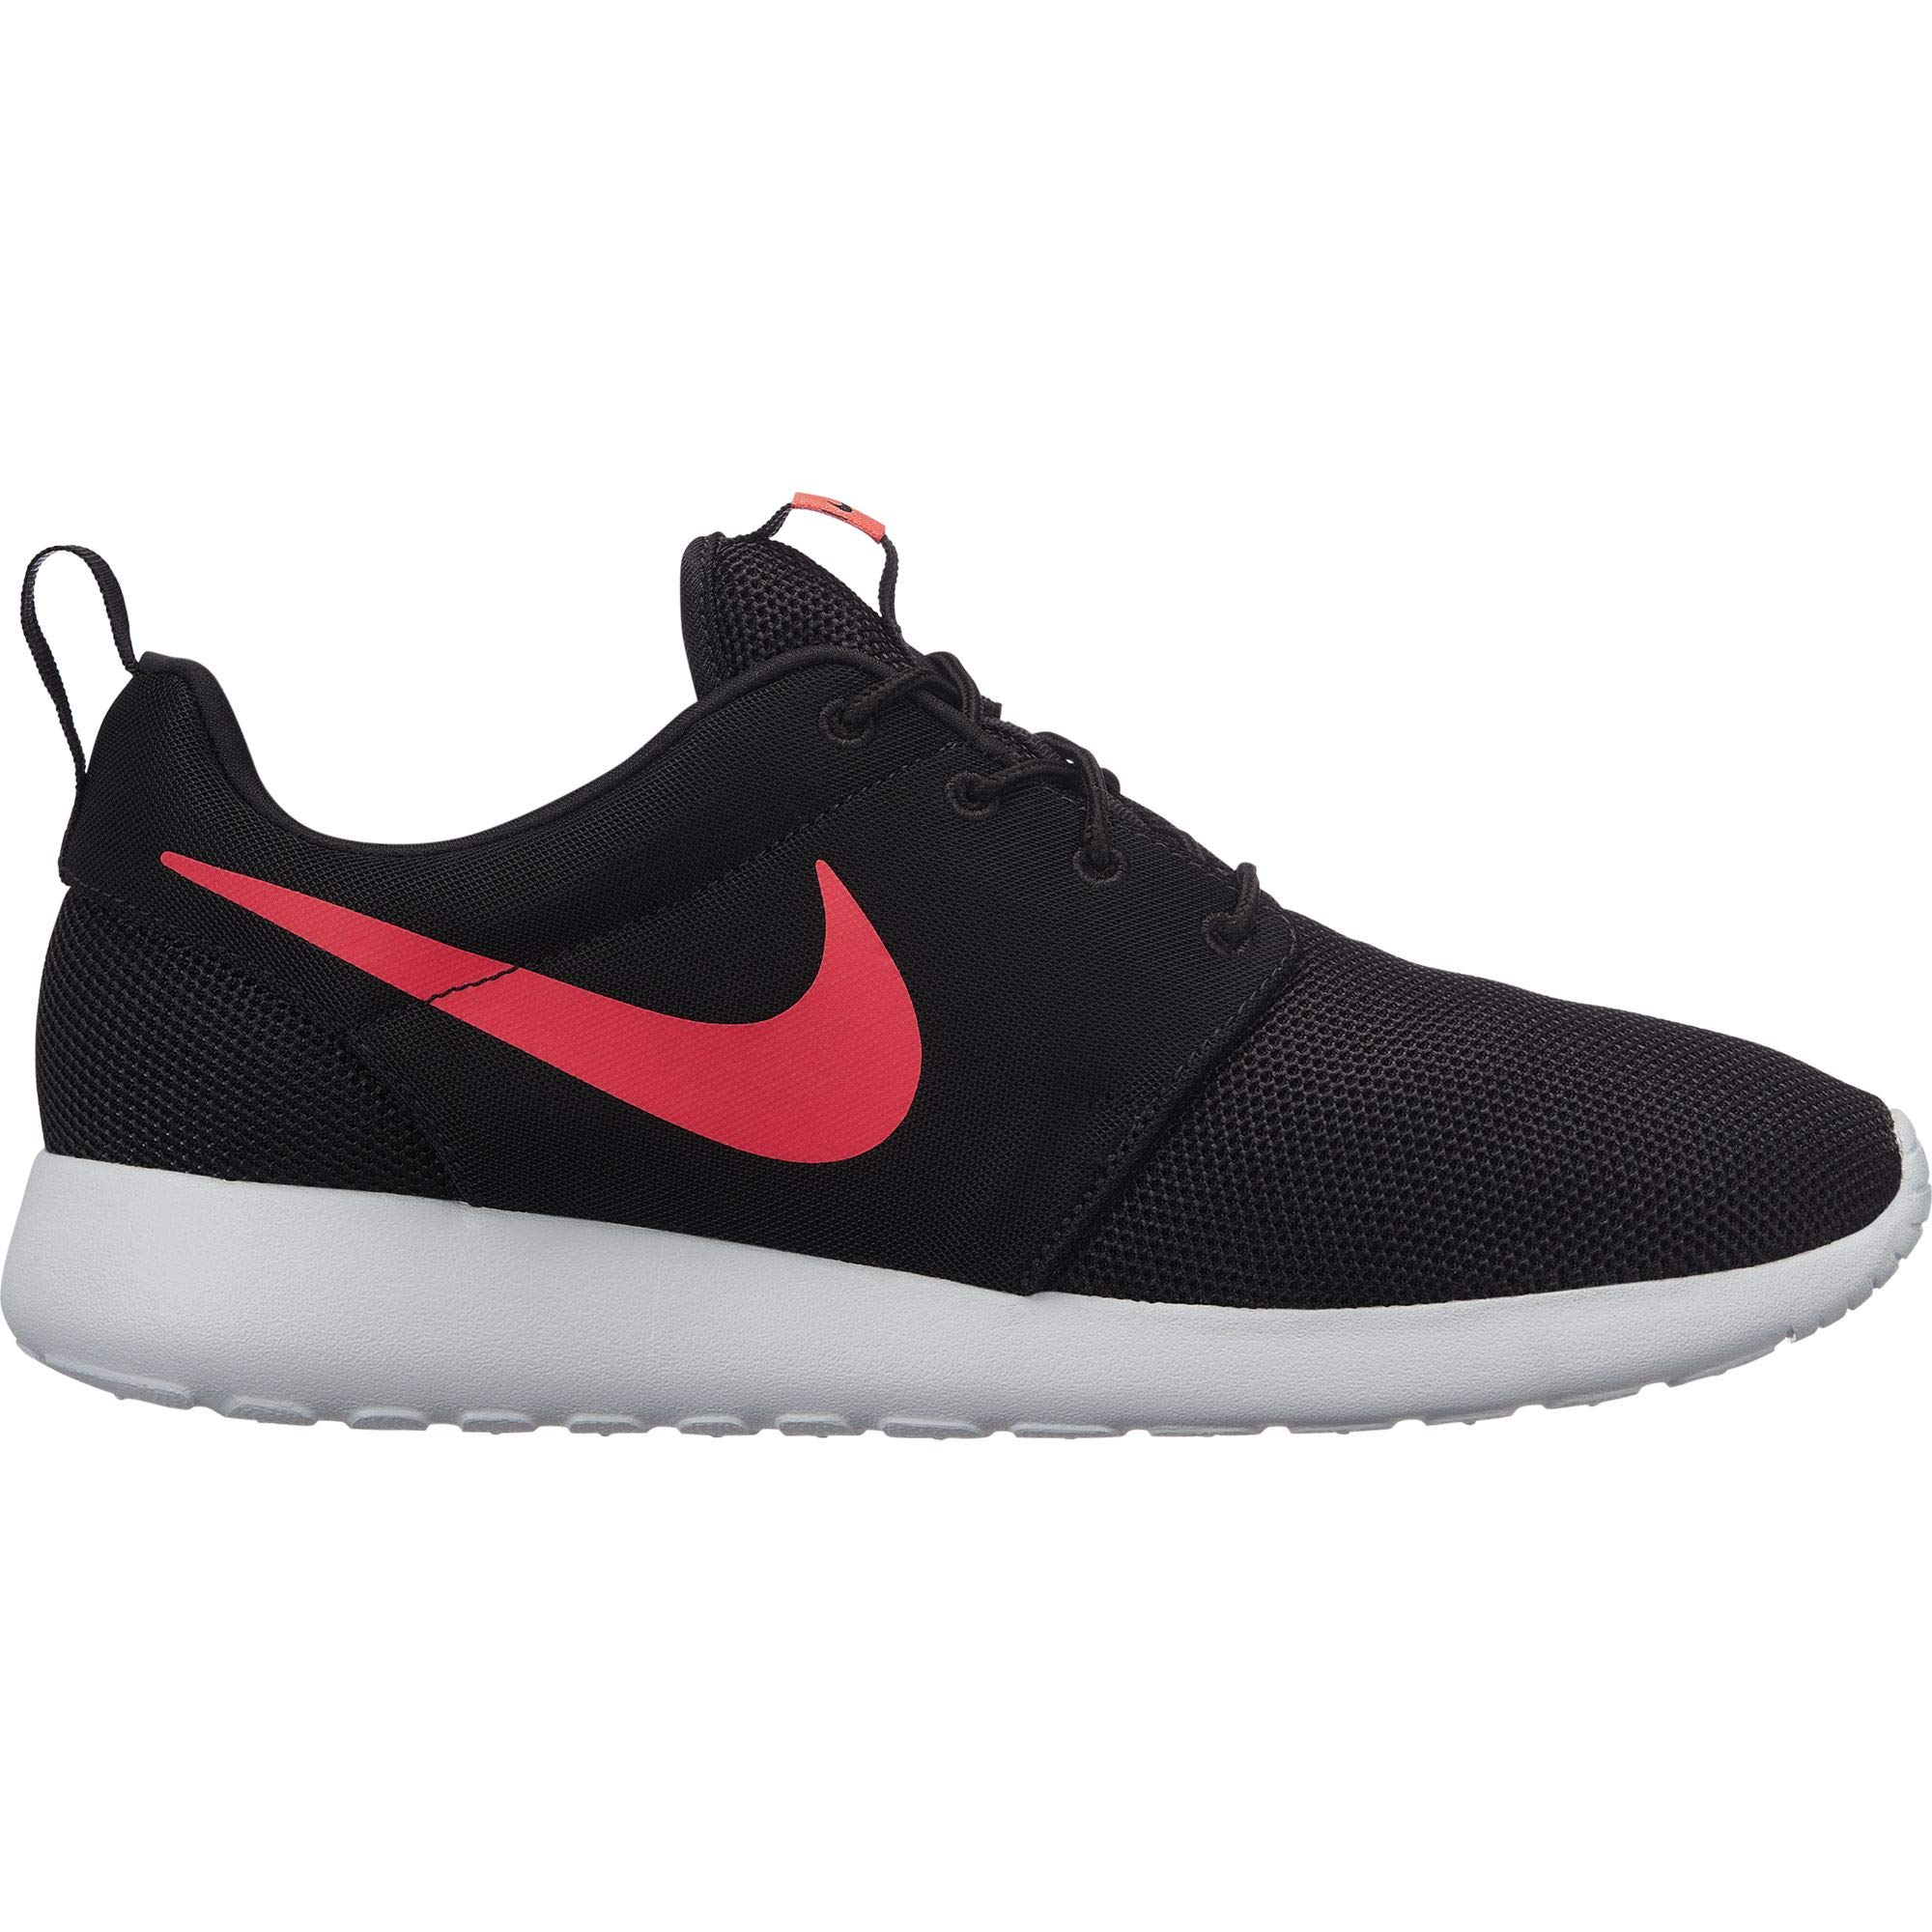 c0b30aaa3 Galleon - Nike Men's Roshe One Running Shoes, Black/Solar Red-Pure  Platinum, 13